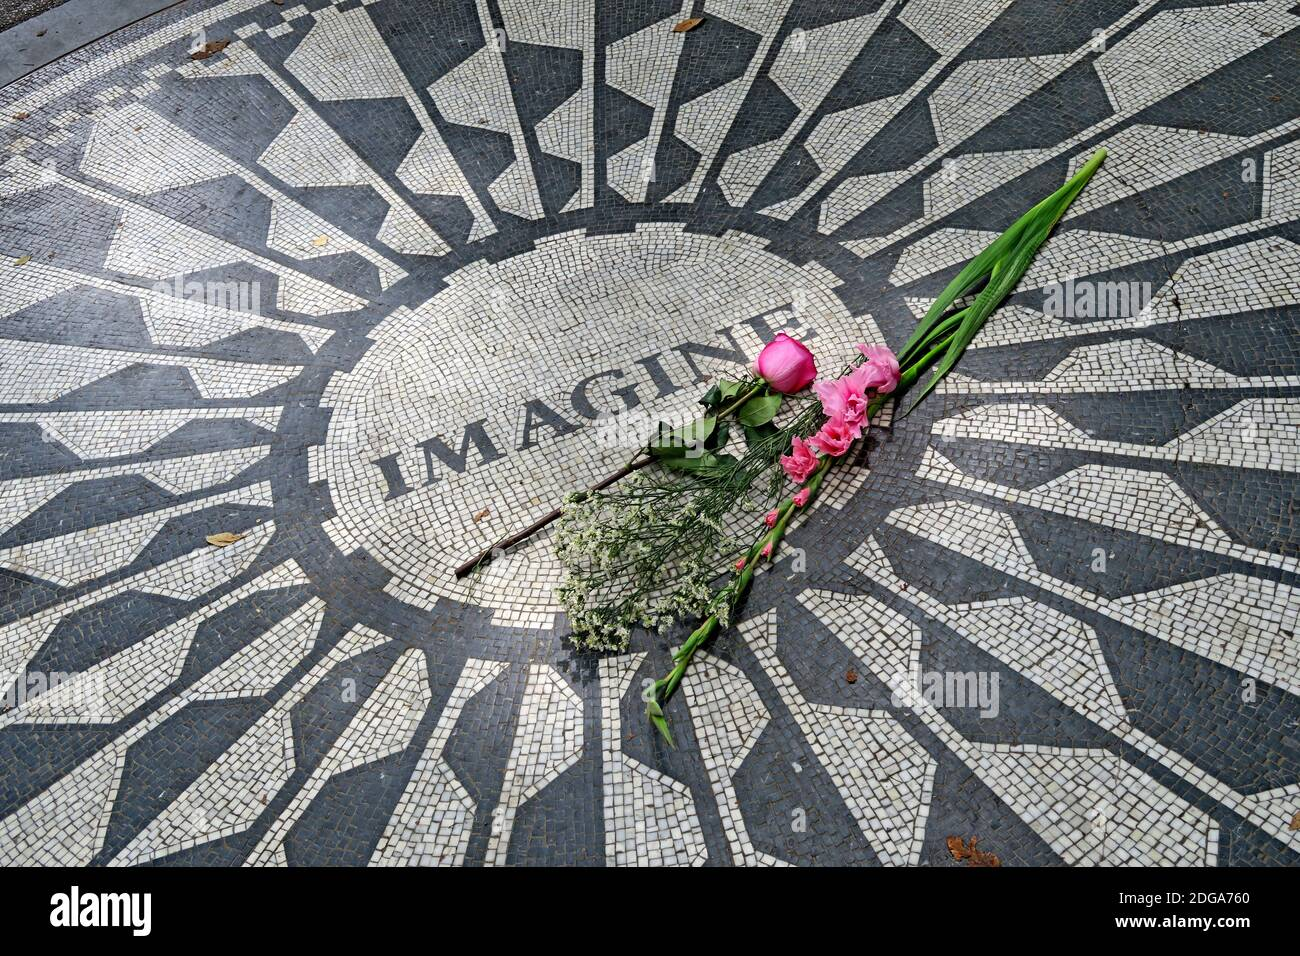 @Hotpixuk,Hotpixuk,GoTonySmith,beatles,NY,New York,memorial,imagine,words,NYC,rose,roses,Imagine memorial,memorial mosaic,Strawberry Fields NY,Strawberry Fields,Strawberry Fields New York,Bruce Kelly,West 72nd Street,72nd St,Apple Records,musician,composer,song writer,imagine mosaic,mosaic,above us only sky,John Lennon Death,Strawberry Fields Memorial,Lennons,official gravesite,gravesite,rock star,ashes,rockstar,Jacob Wrey Mould